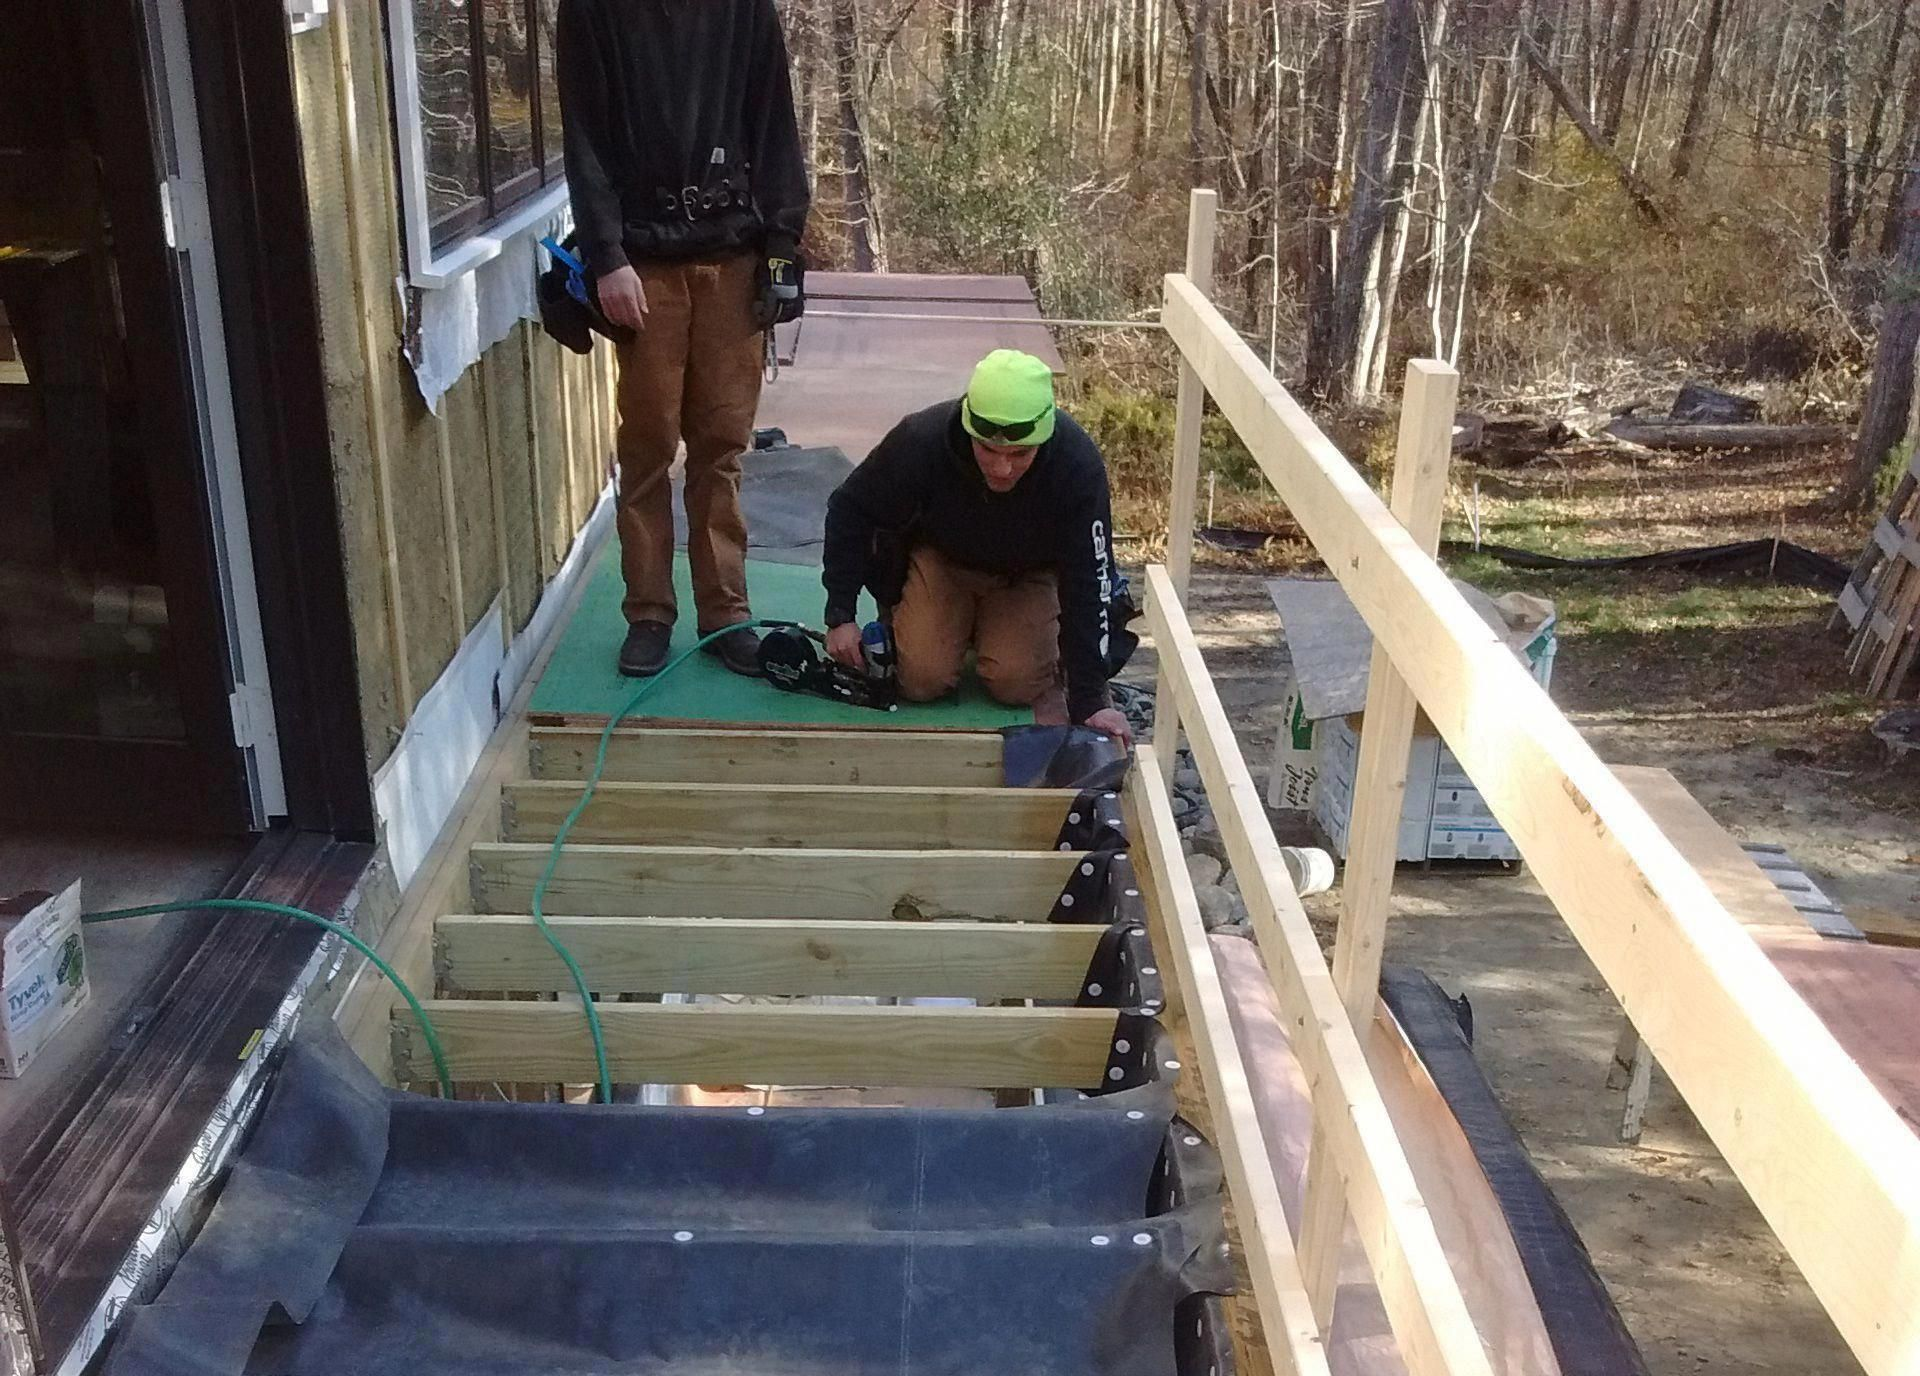 Use An Epdm Roofing Membrane And Off The Shelf Gutter Parts To Build A Cost Effective Under Deck Drainag Deck Building Cost Under Deck Drainage Building A Deck